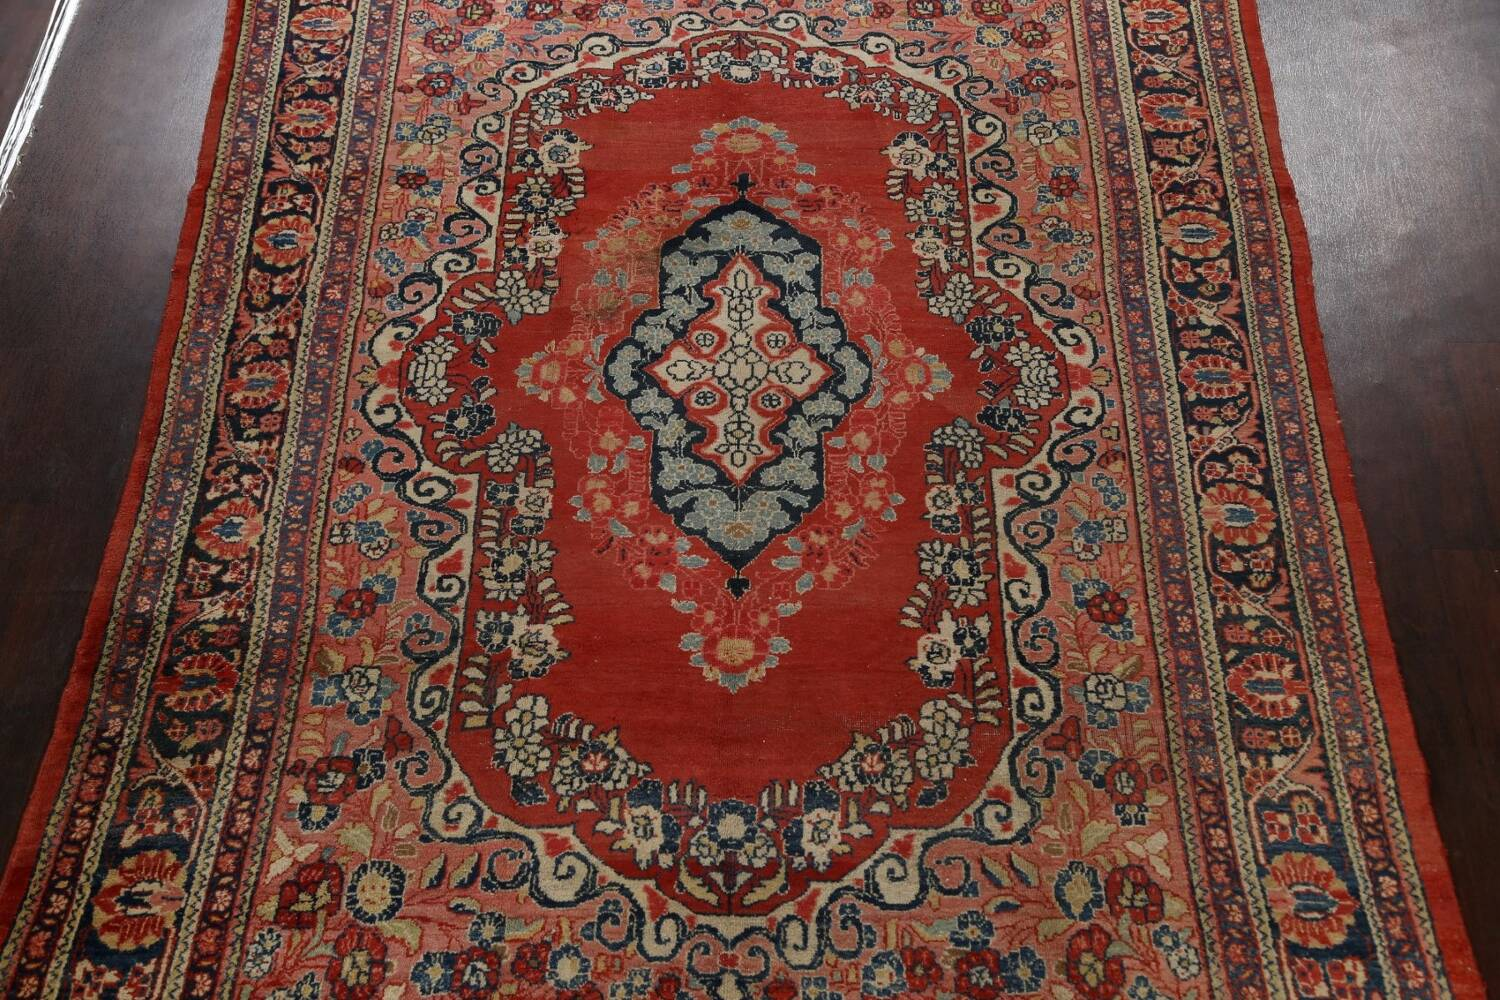 Antique Floral Mahal Persian Area Rug 8x11 image 3